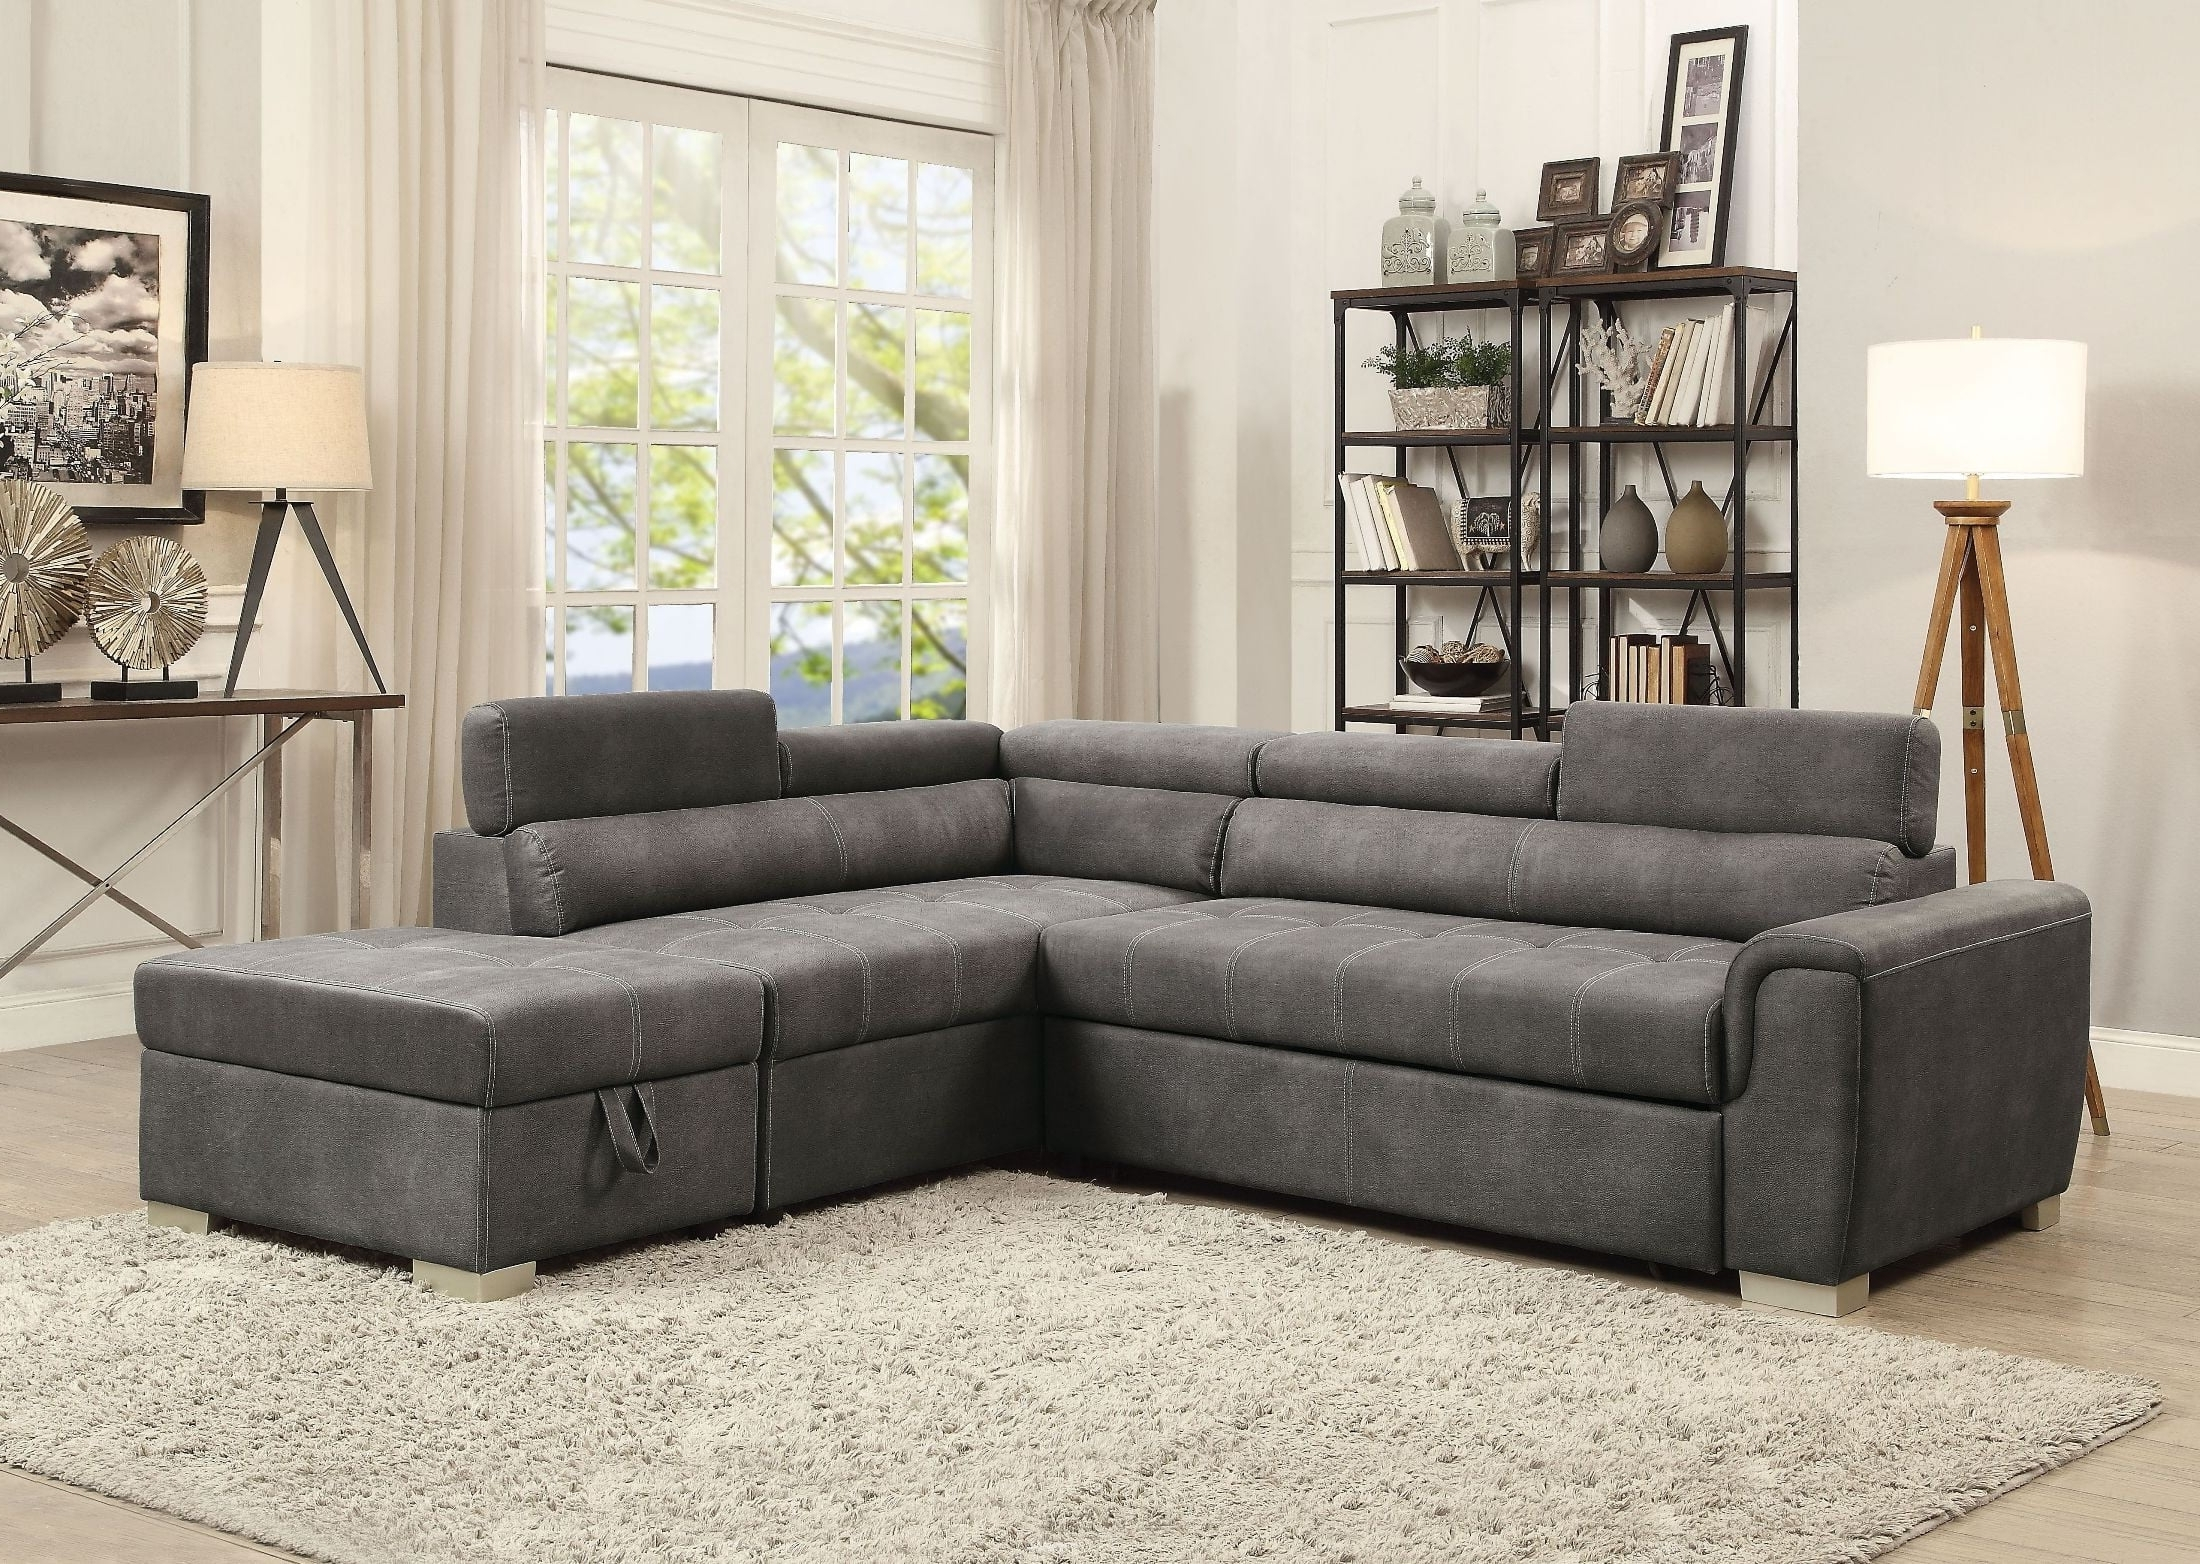 Thelma Gray Polished Sectional Sleeper Sofa With Ottoman From Acme Pertaining To Most Current Sectional Sofas At Barrie (View 9 of 20)